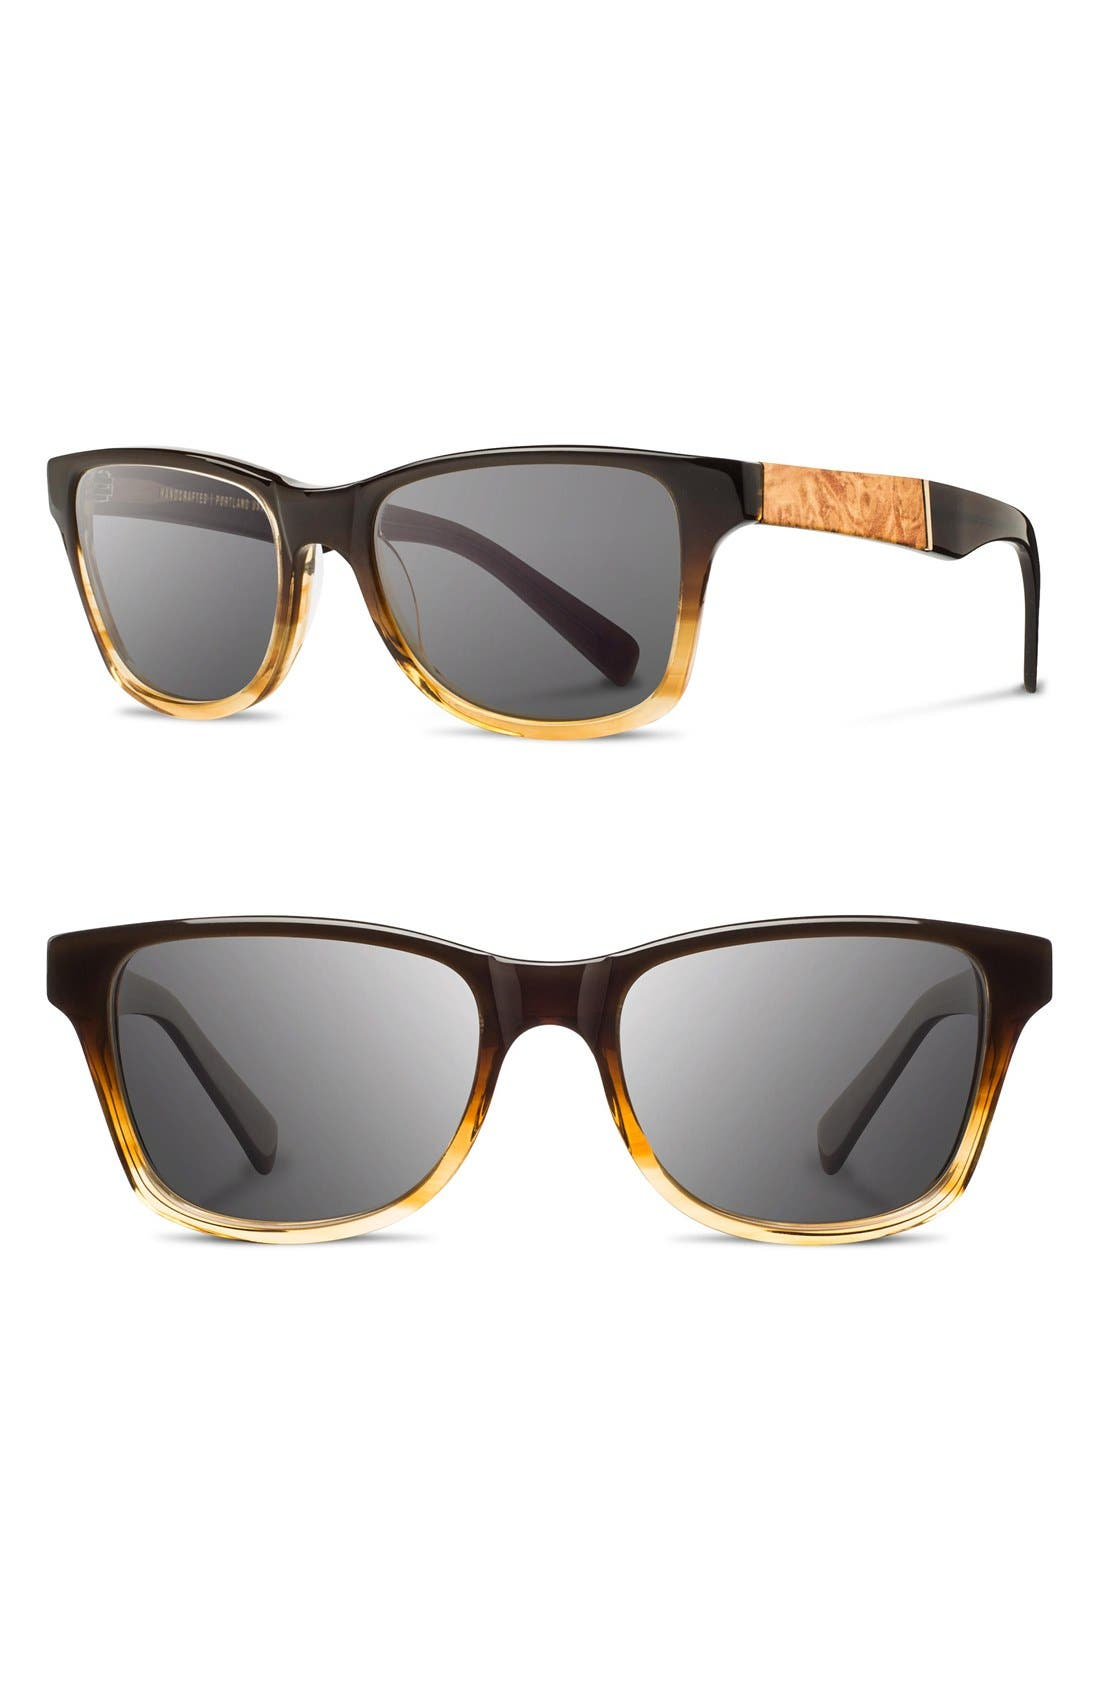 'Canby' 53mm Sunglasses,                         Main,                         color, Sweettea/ Maple/ Grey